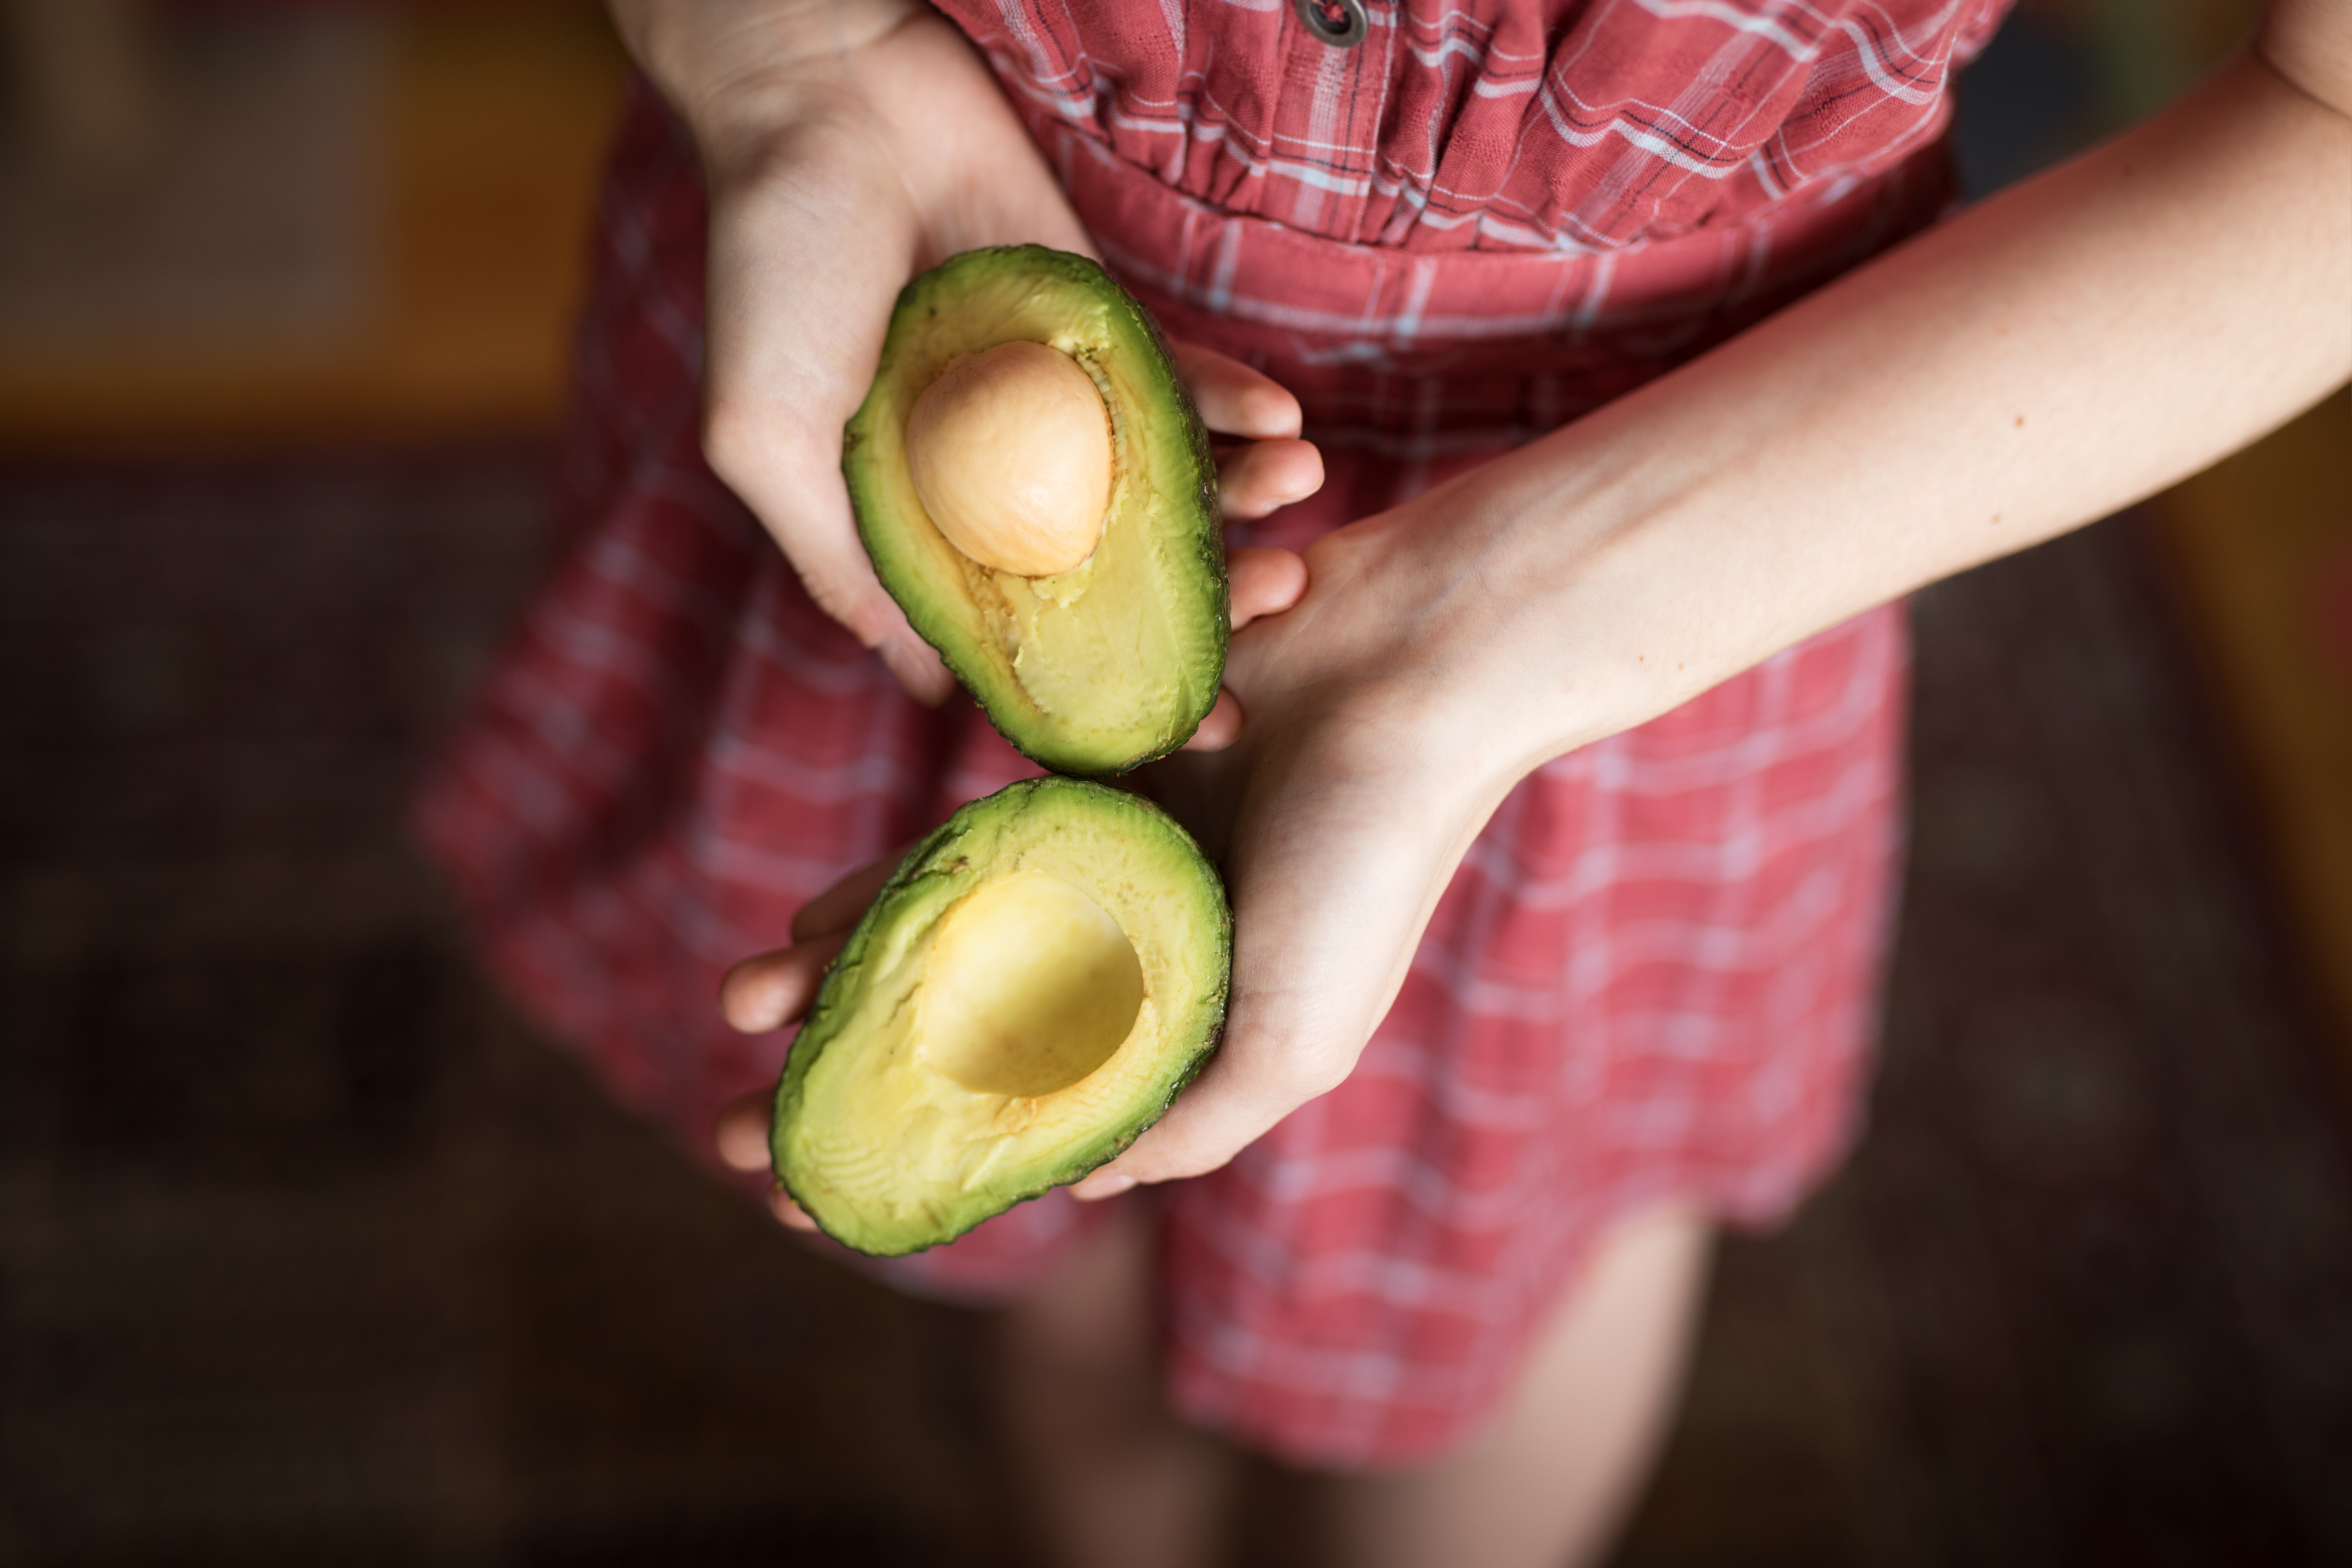 person holding two sliced avocados